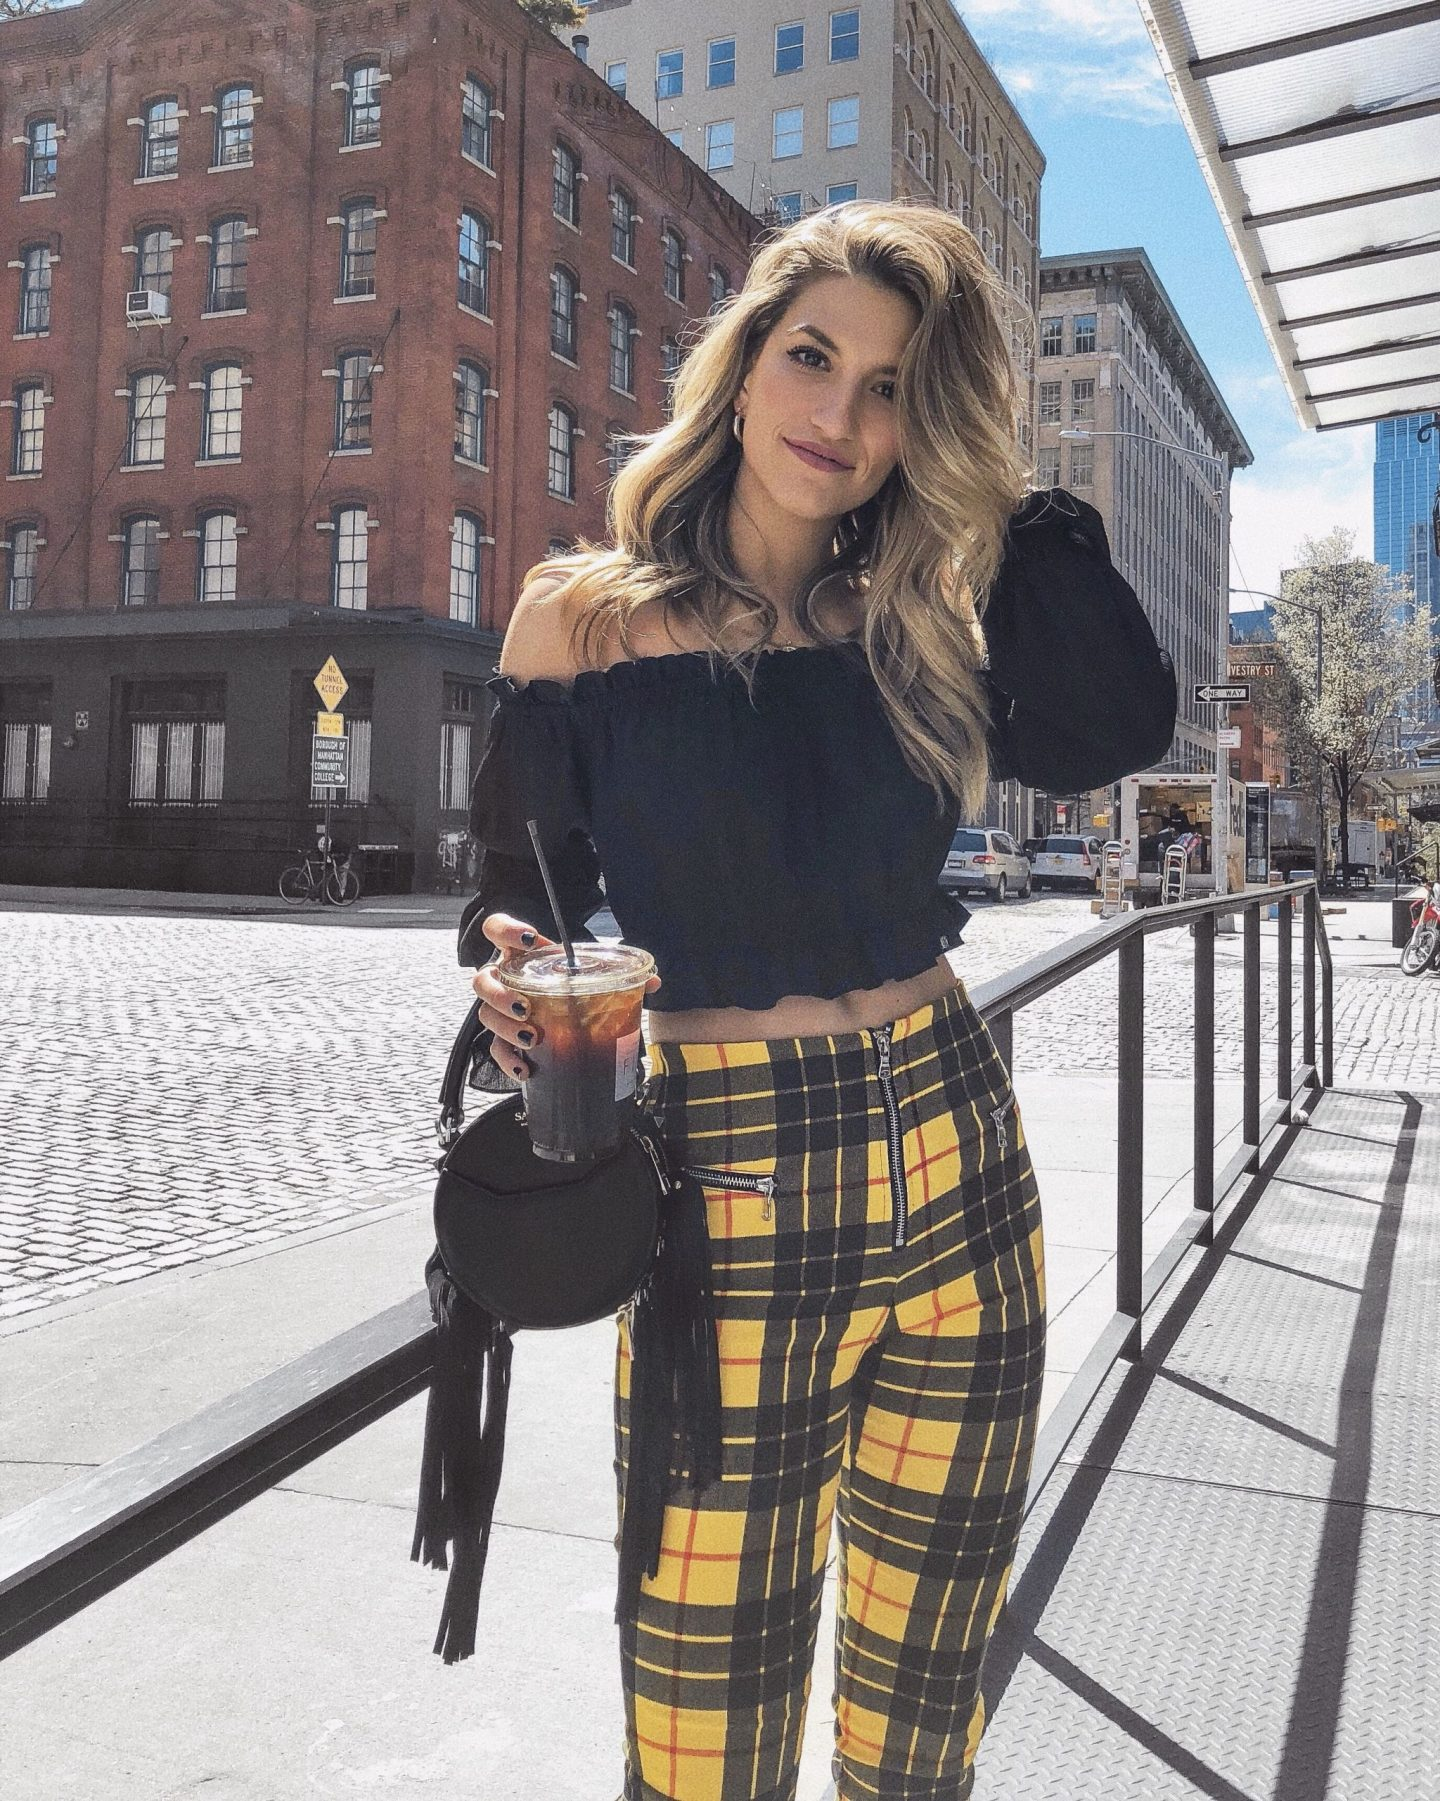 Cassandra DiMicco, Cass DiMicco, Dressed For Dreams, NYC, New York City, New York, Street Style NYC, Street Style 2018, NYC Street Style Street Style Outfits, 2018 Trends, NYC Fashion Blogger, Tiger mist outfit, Yellow Plaid pants, Salar purse, black off the shoulder top, Tribeca